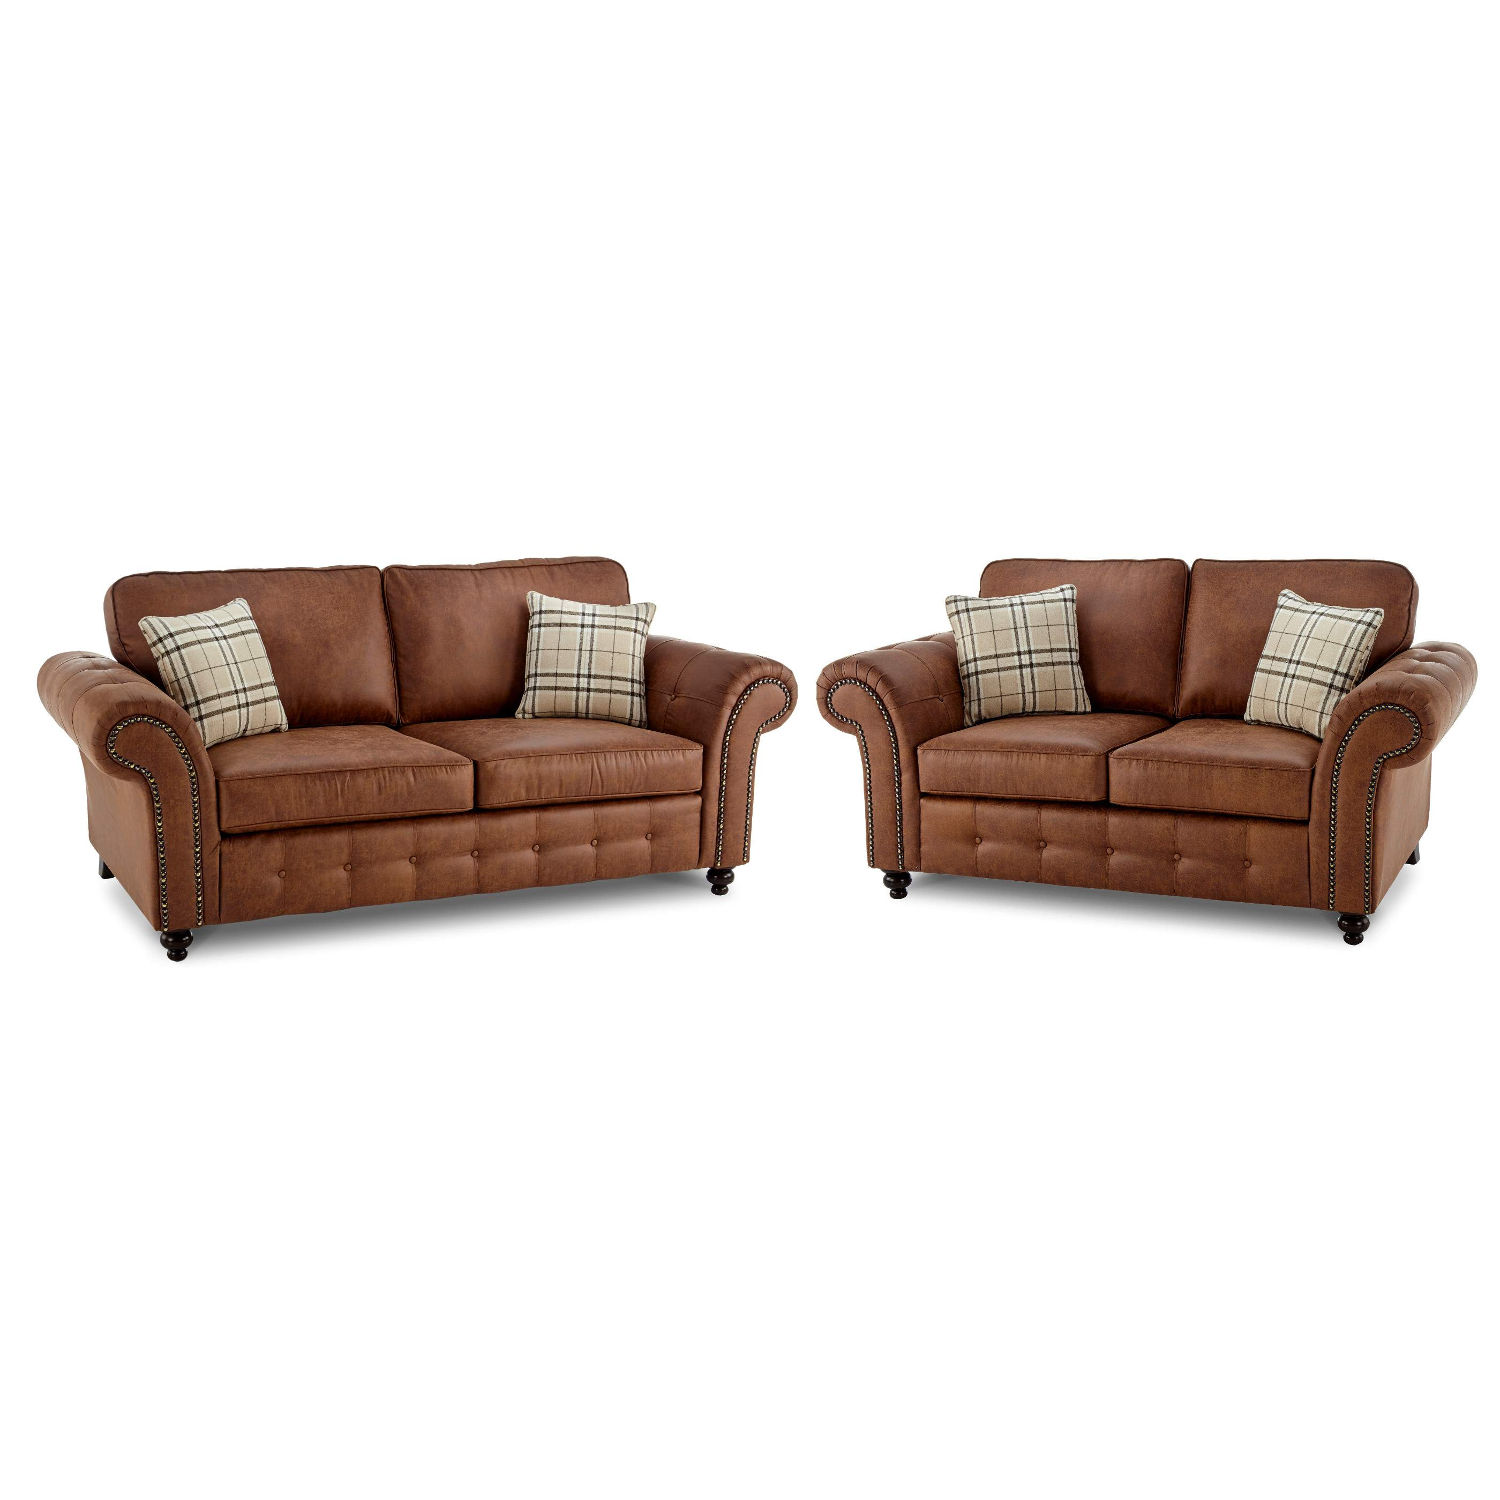 Astonishing Oakland Faux Leather 3 And 2 Seater Sofa Combo In Brown Download Free Architecture Designs Salvmadebymaigaardcom